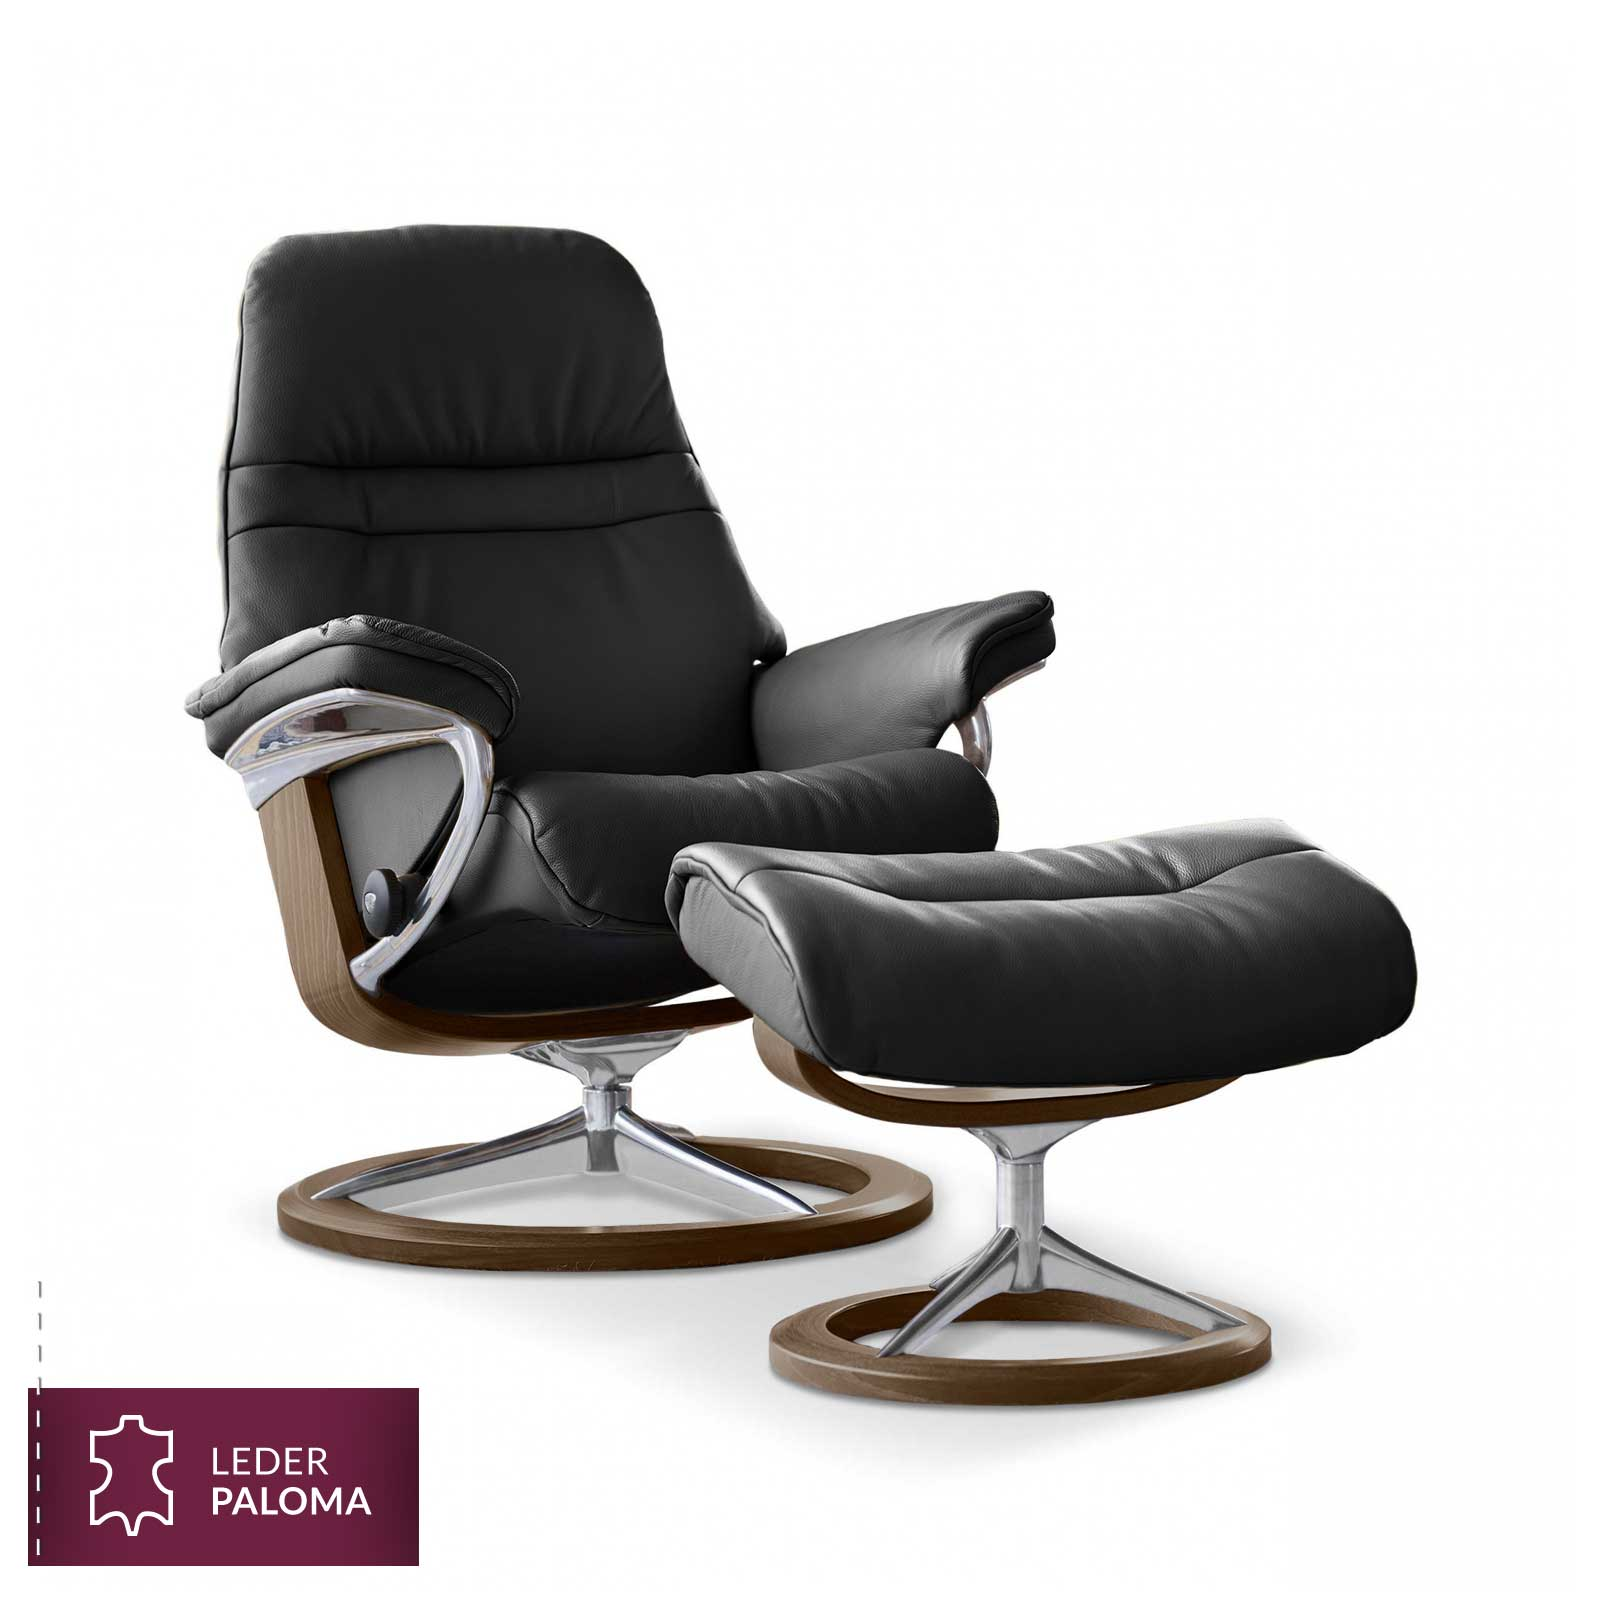 Stresless Stressless Sessel Sunrise Signature M Paloma Black Mit Hocker